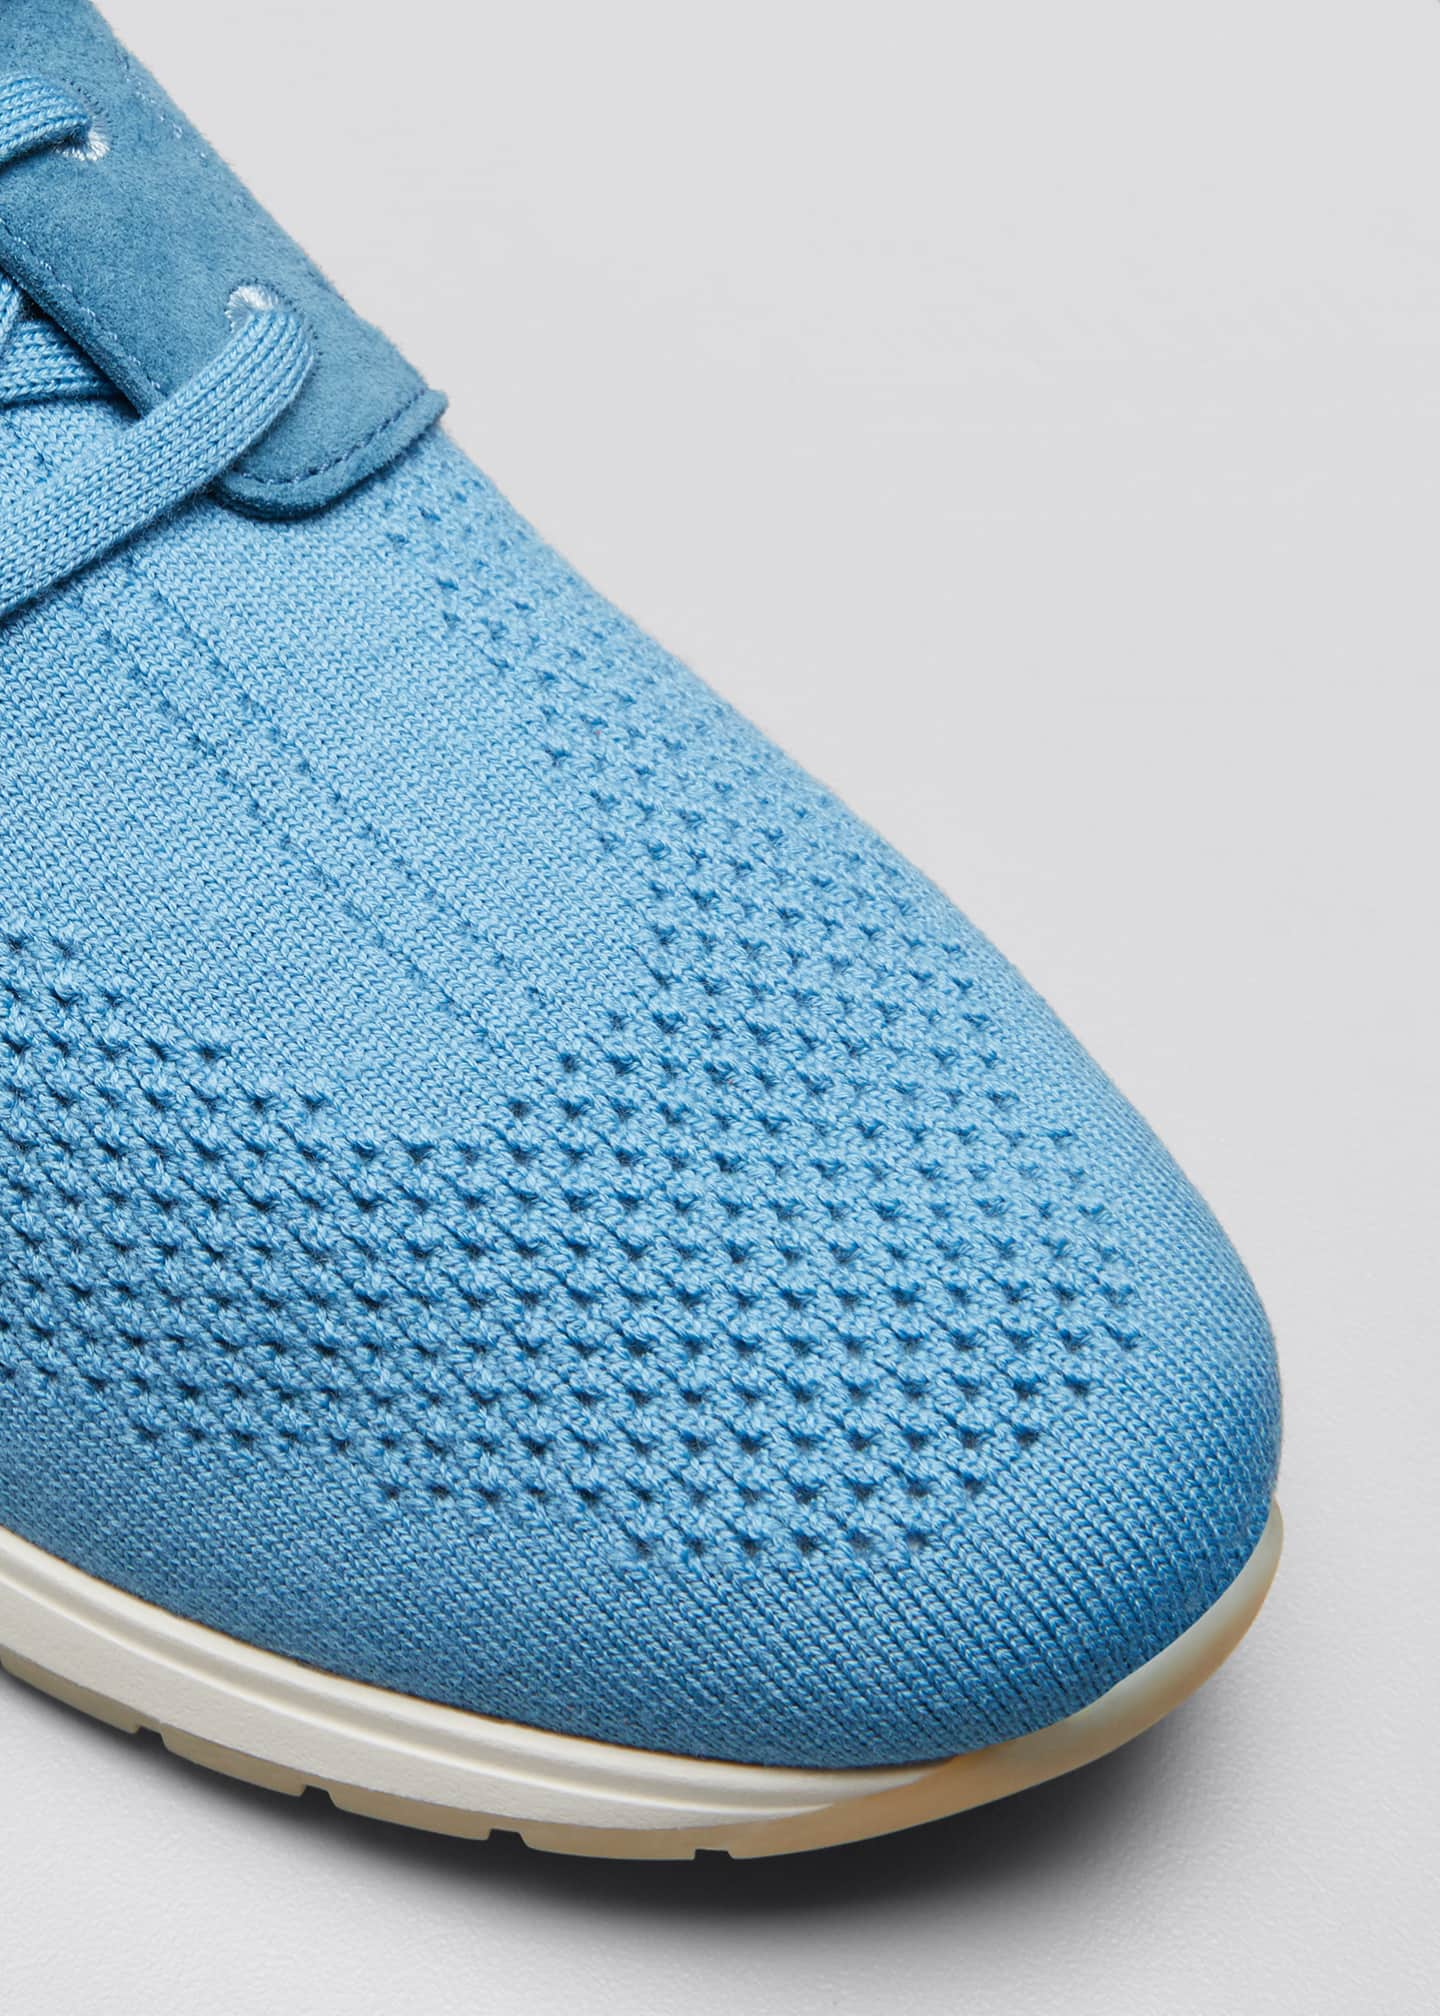 Image 5 of 5: Spring Dew Knit Fashion Sneakers